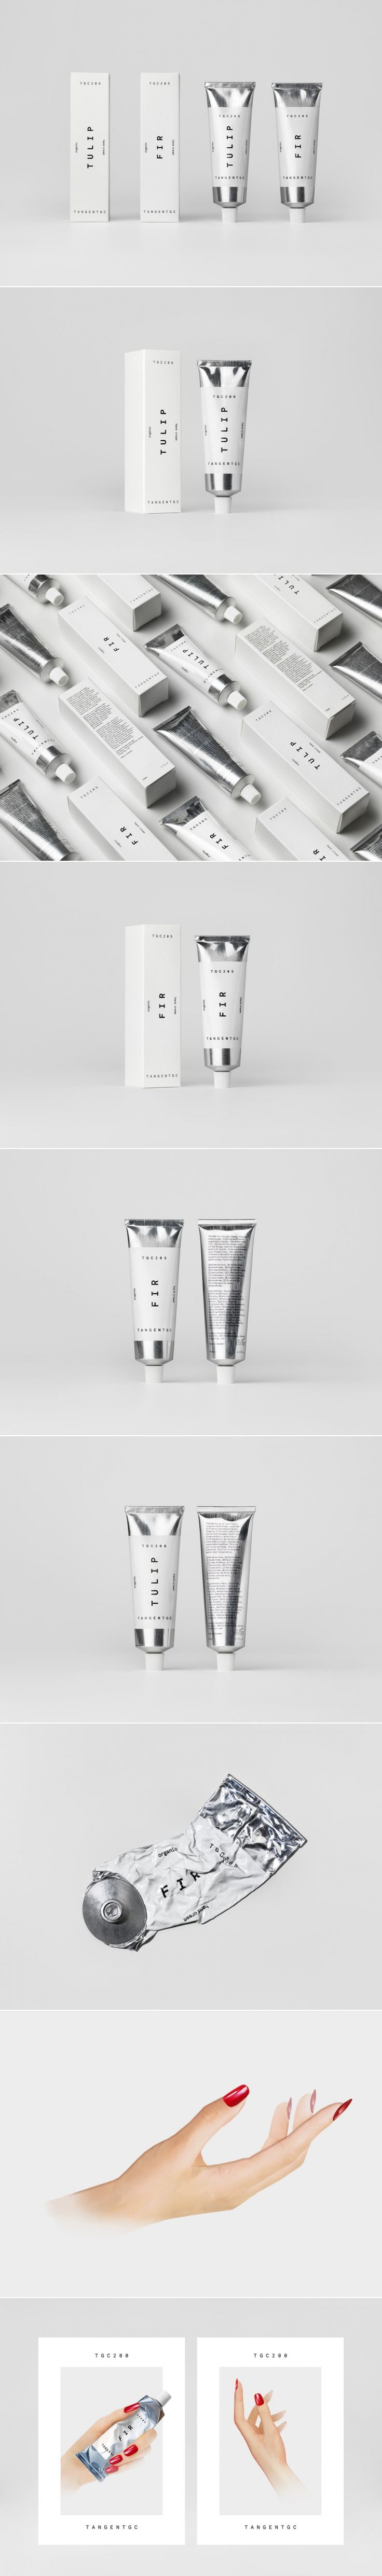 Check Out the Elegant Minimal Packaging For This Hand Cream — The Dieline | Packaging & Branding Design & Innovation News